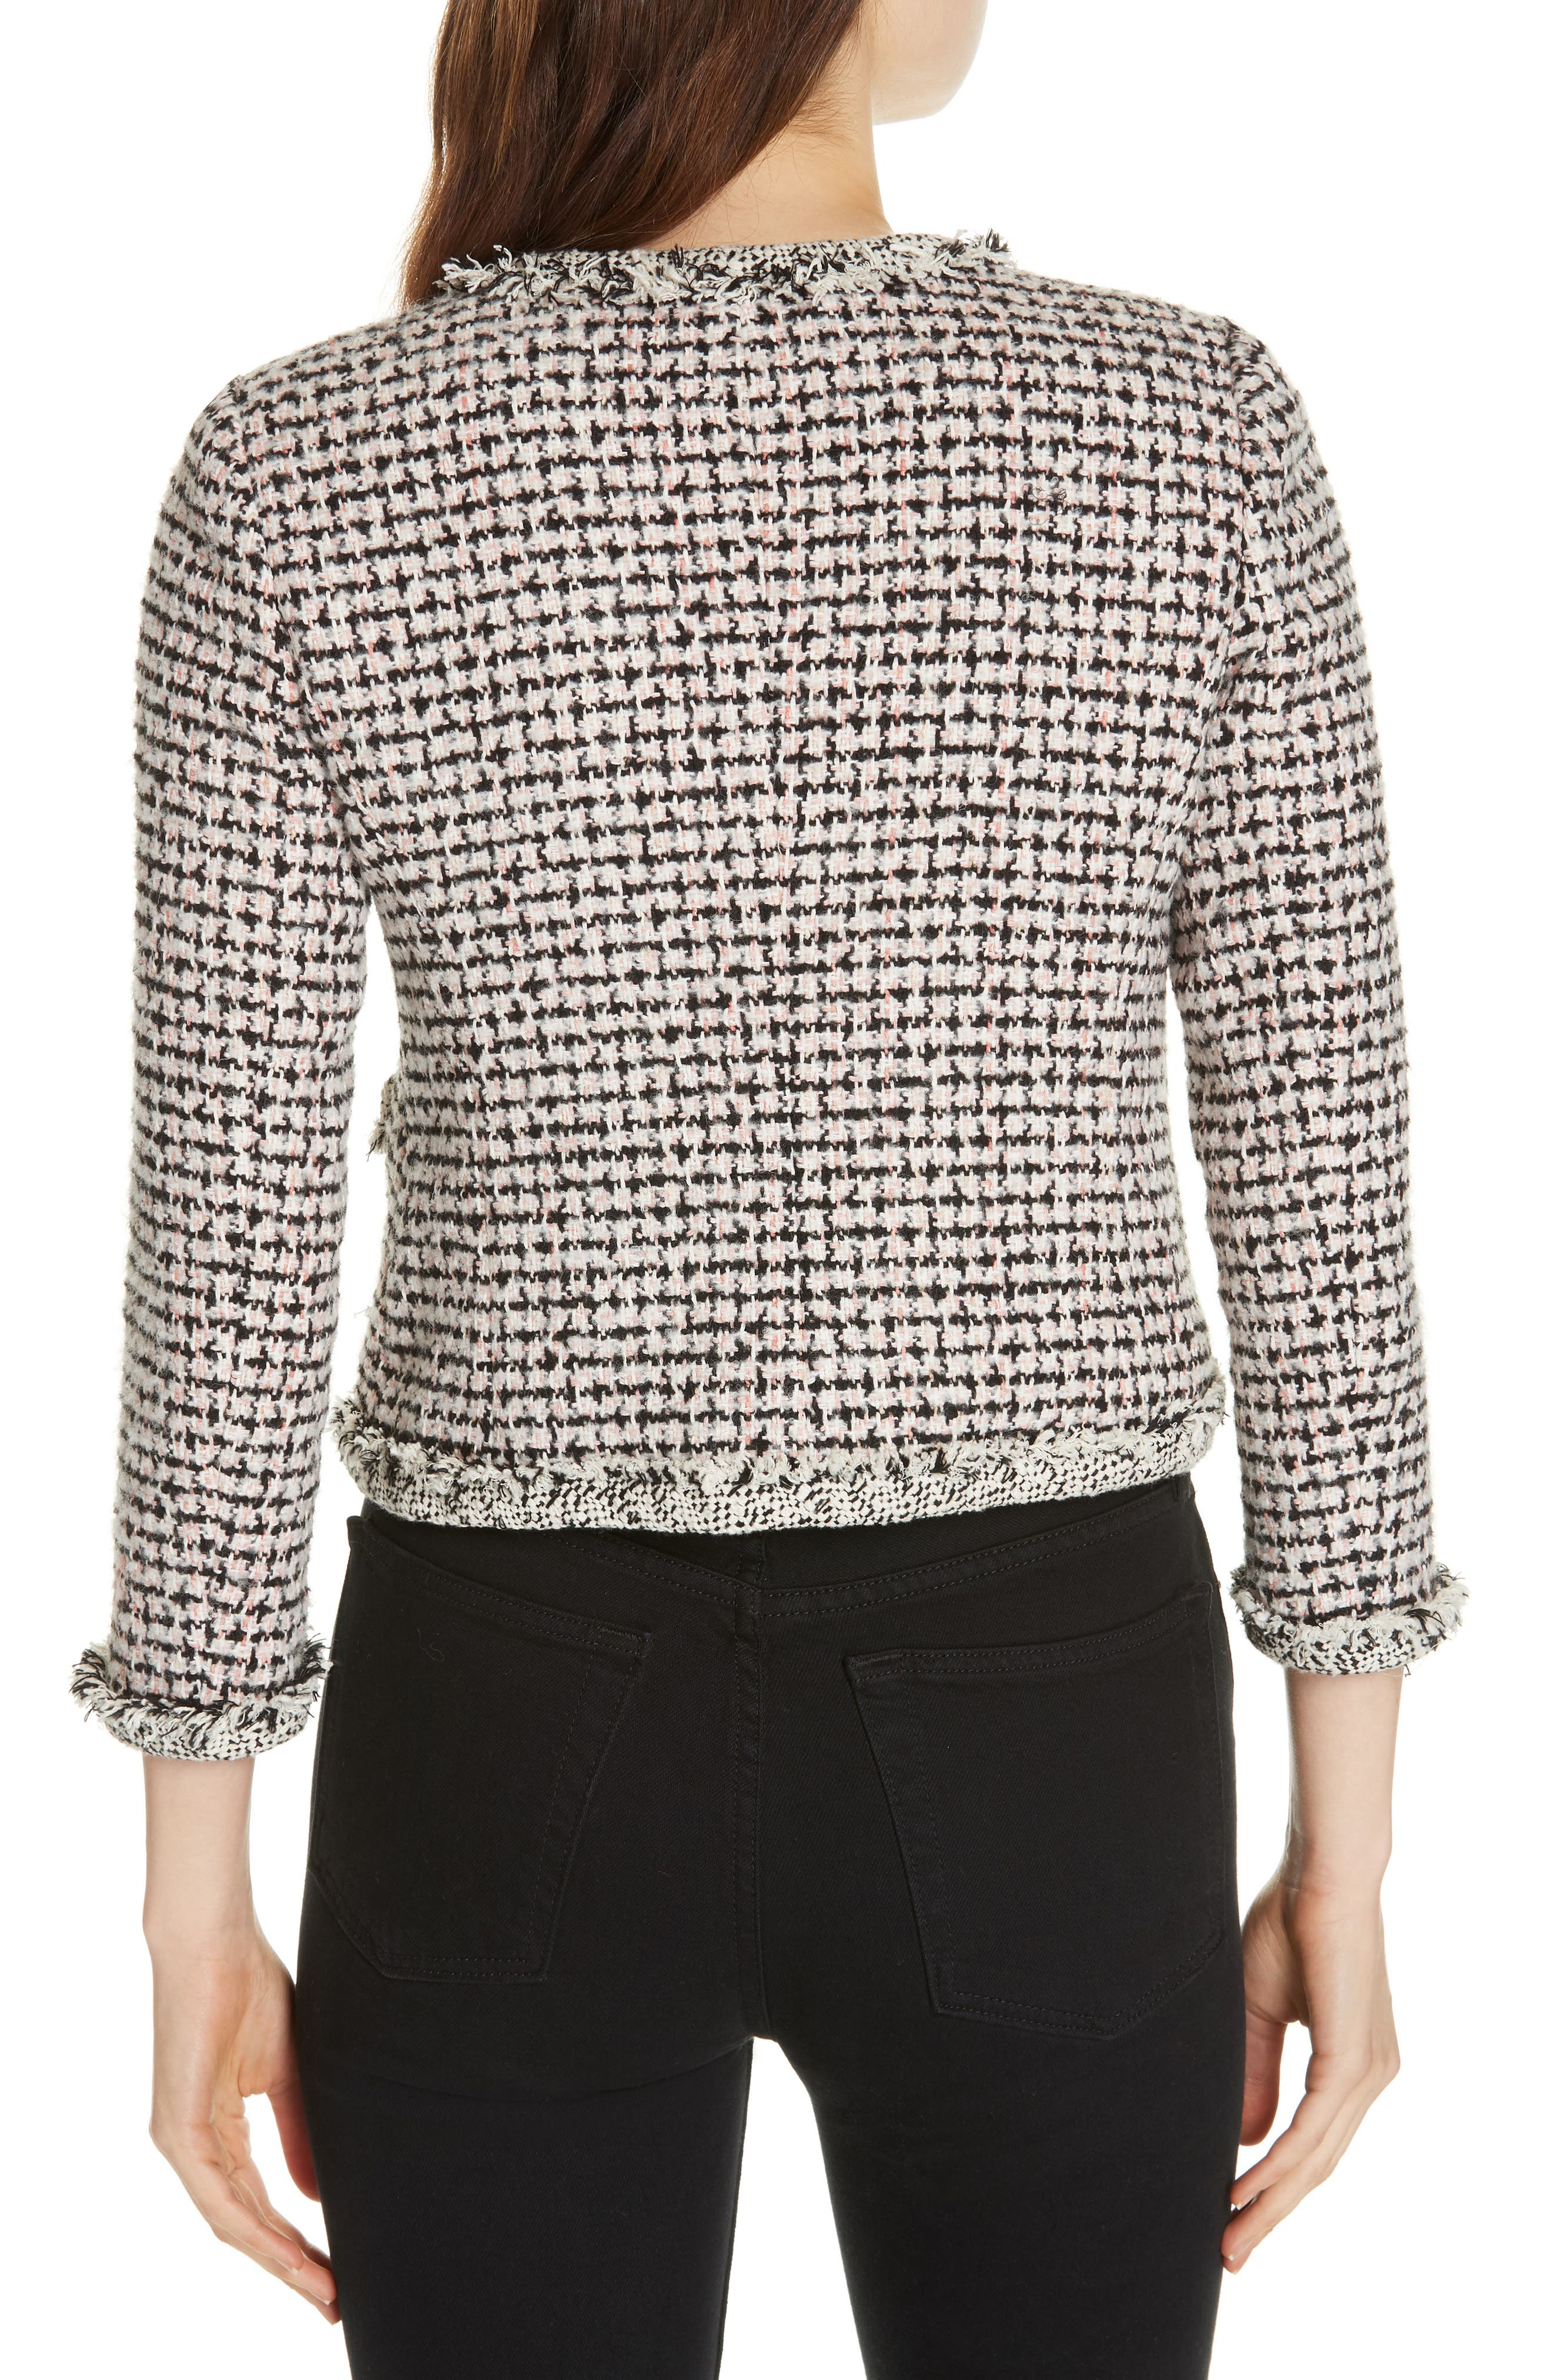 REBECCA TAYLOR, Houndstooth Tweed Jacket, Alternate thumbnail 2, color, BLACK/ PINK COMBO